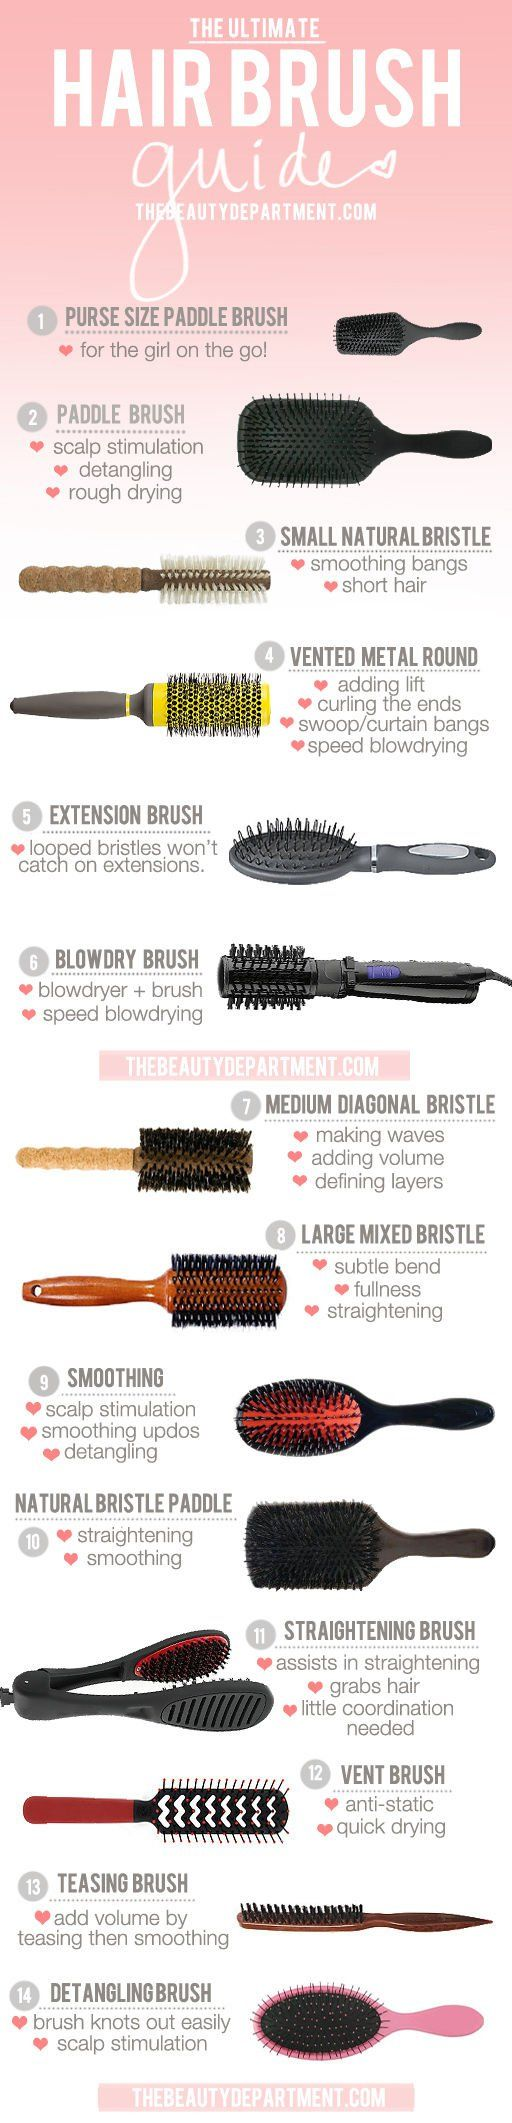 The Best Hair Brush For Your Hair Type | Here's A Great List Of Beauty Tips That...